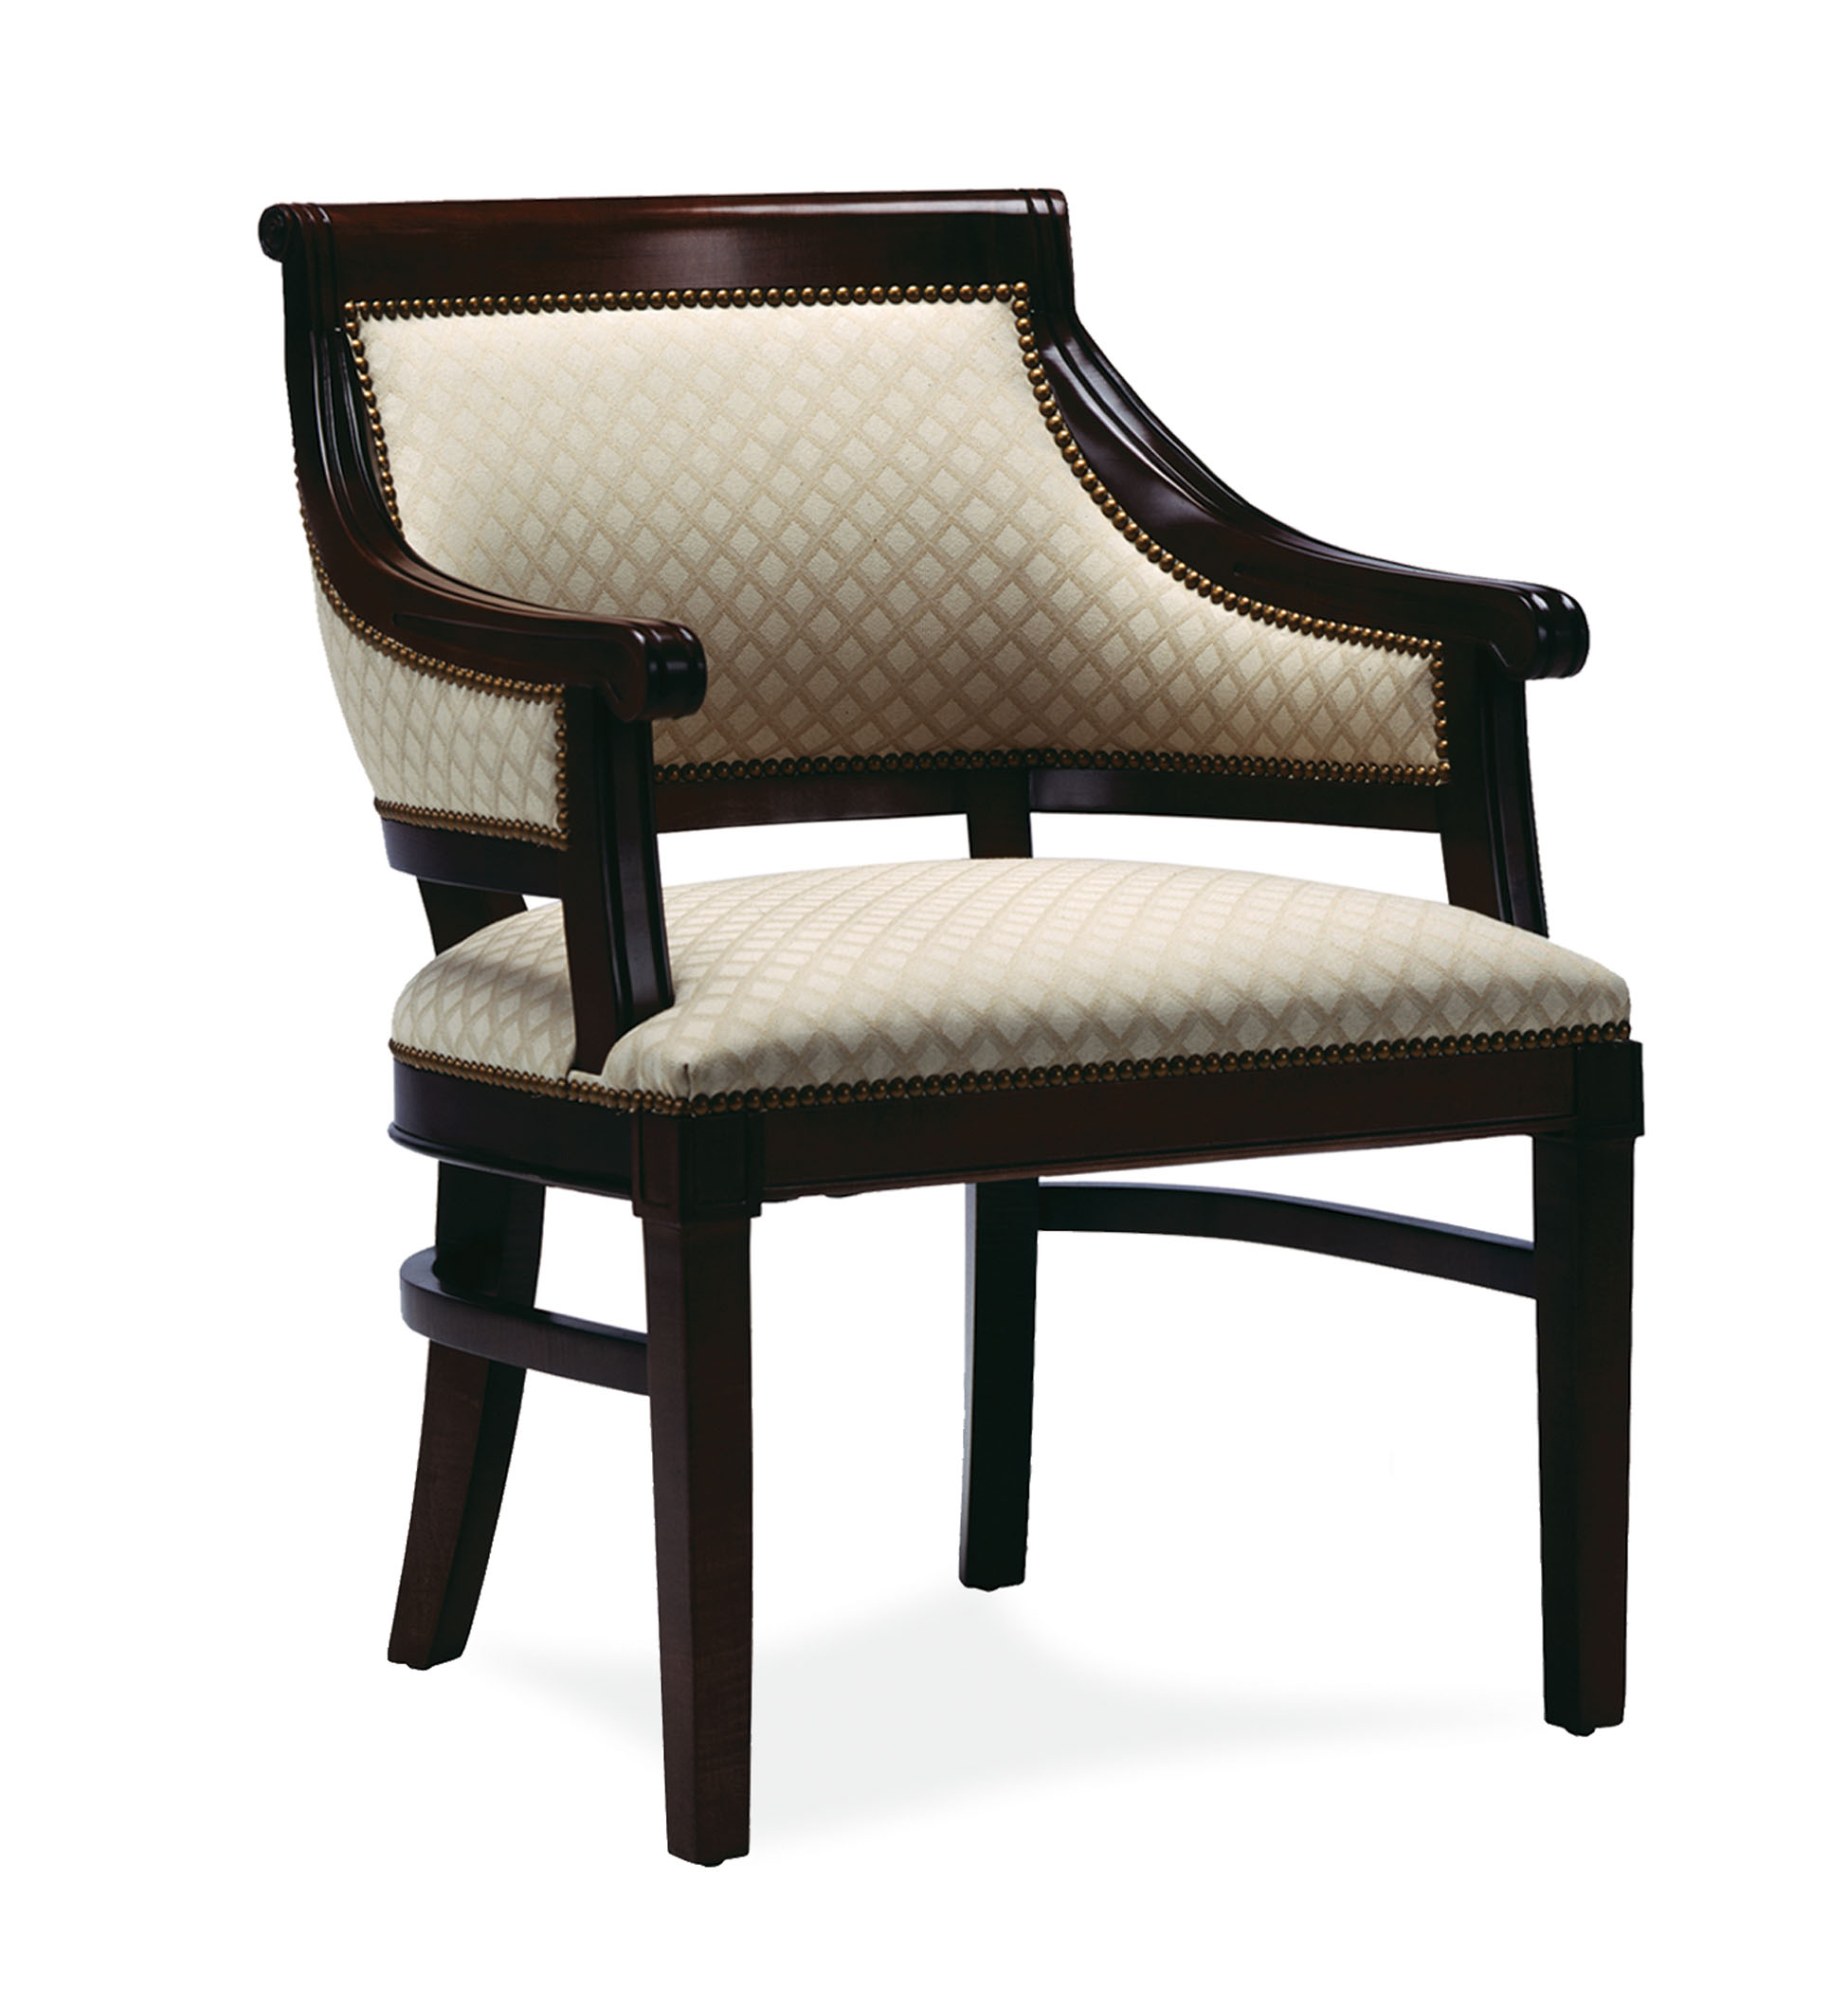 Wooden Arm Chair G5625 Wood Arm Chair